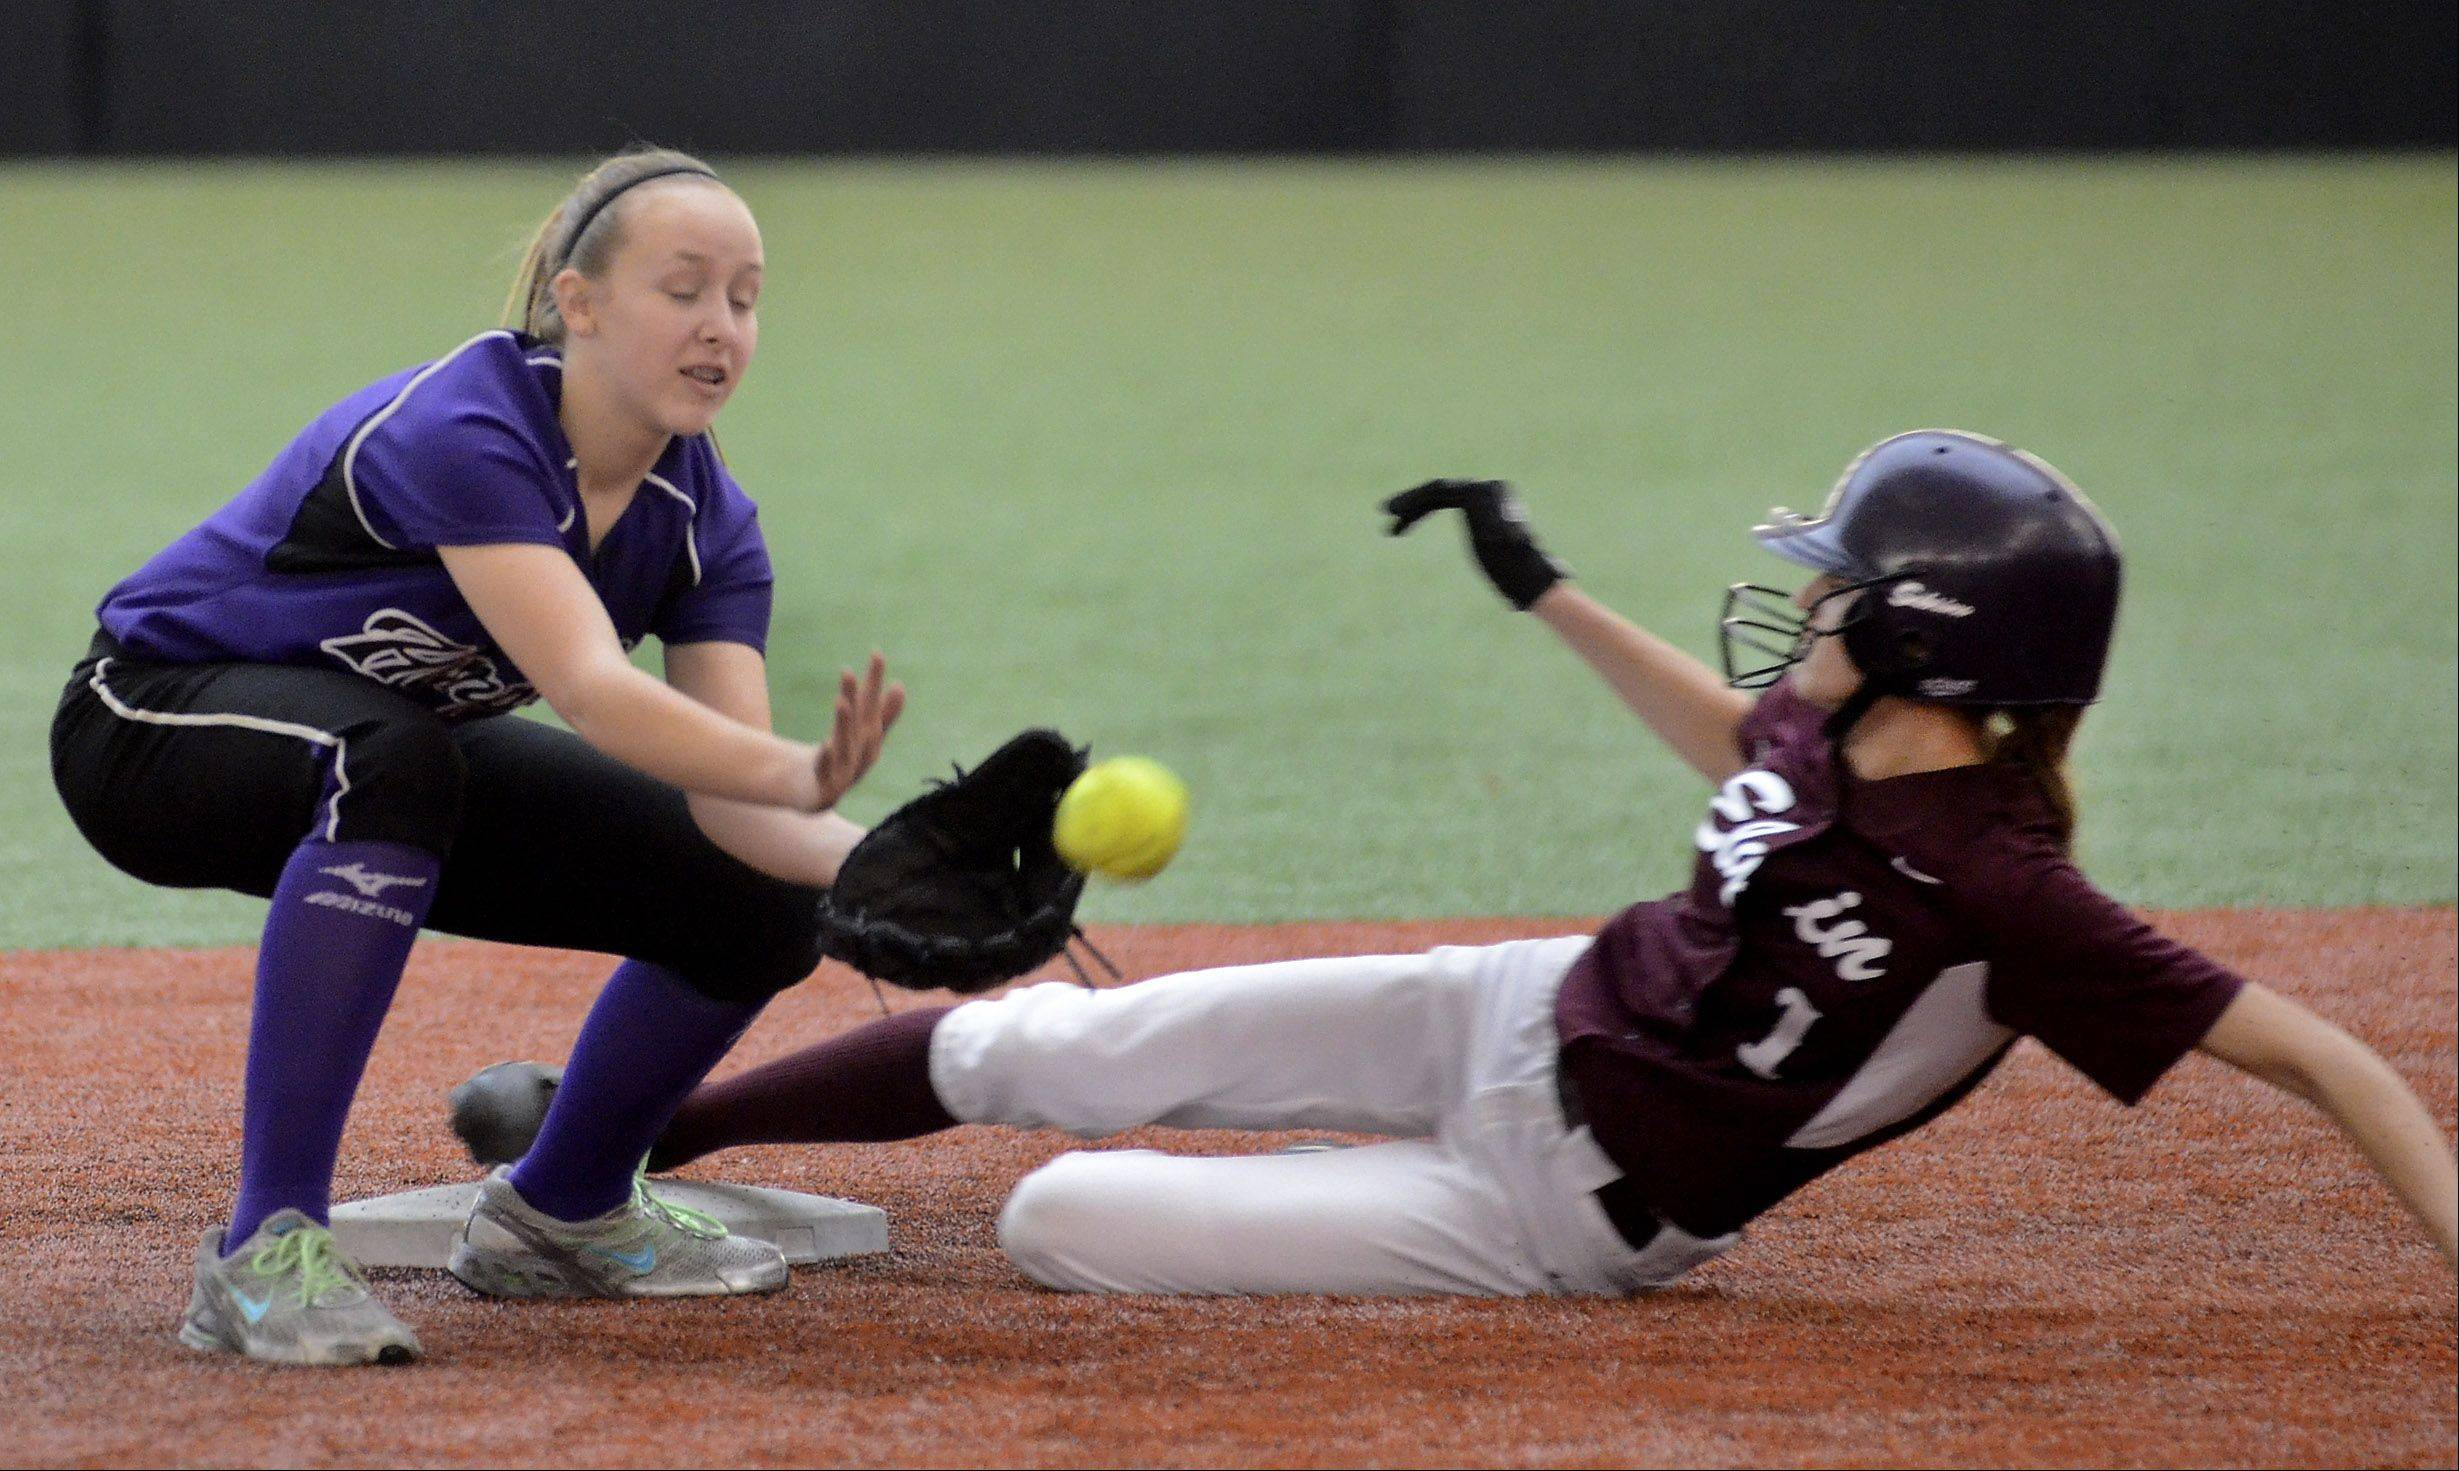 Elgin's Sabrina Stockman is safe at second base in the fifth inning as Hampshire's Ally Snider applies a late tag Monday during the Maroons' 3-2 win in eight innings at The Dome at The Ballpark in Rosemont.